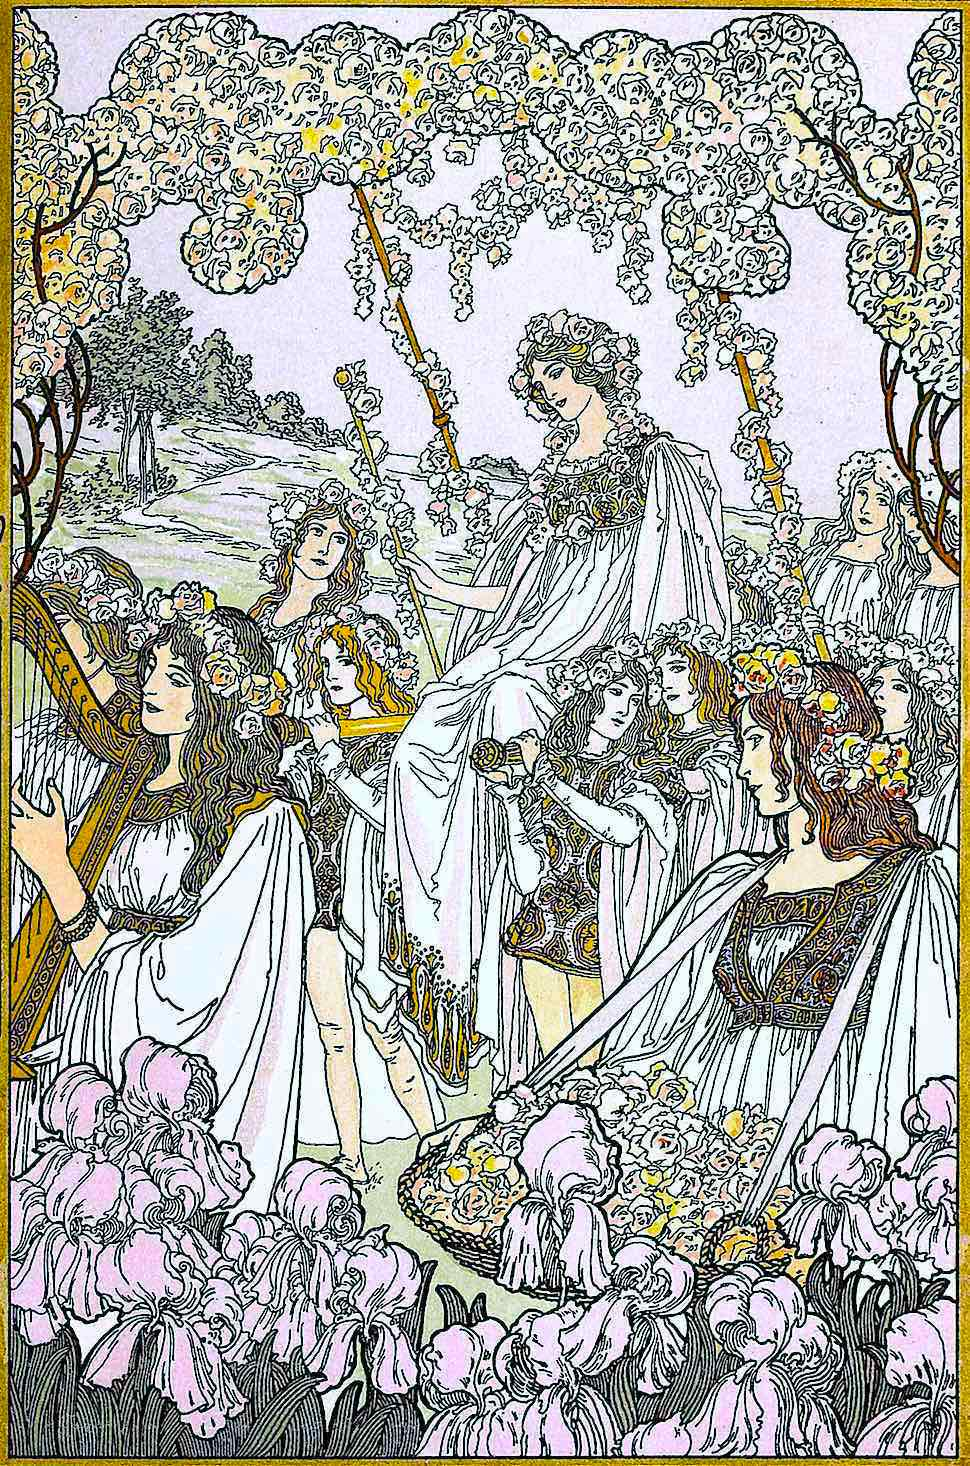 an 1898 procession illustration of women and flowers